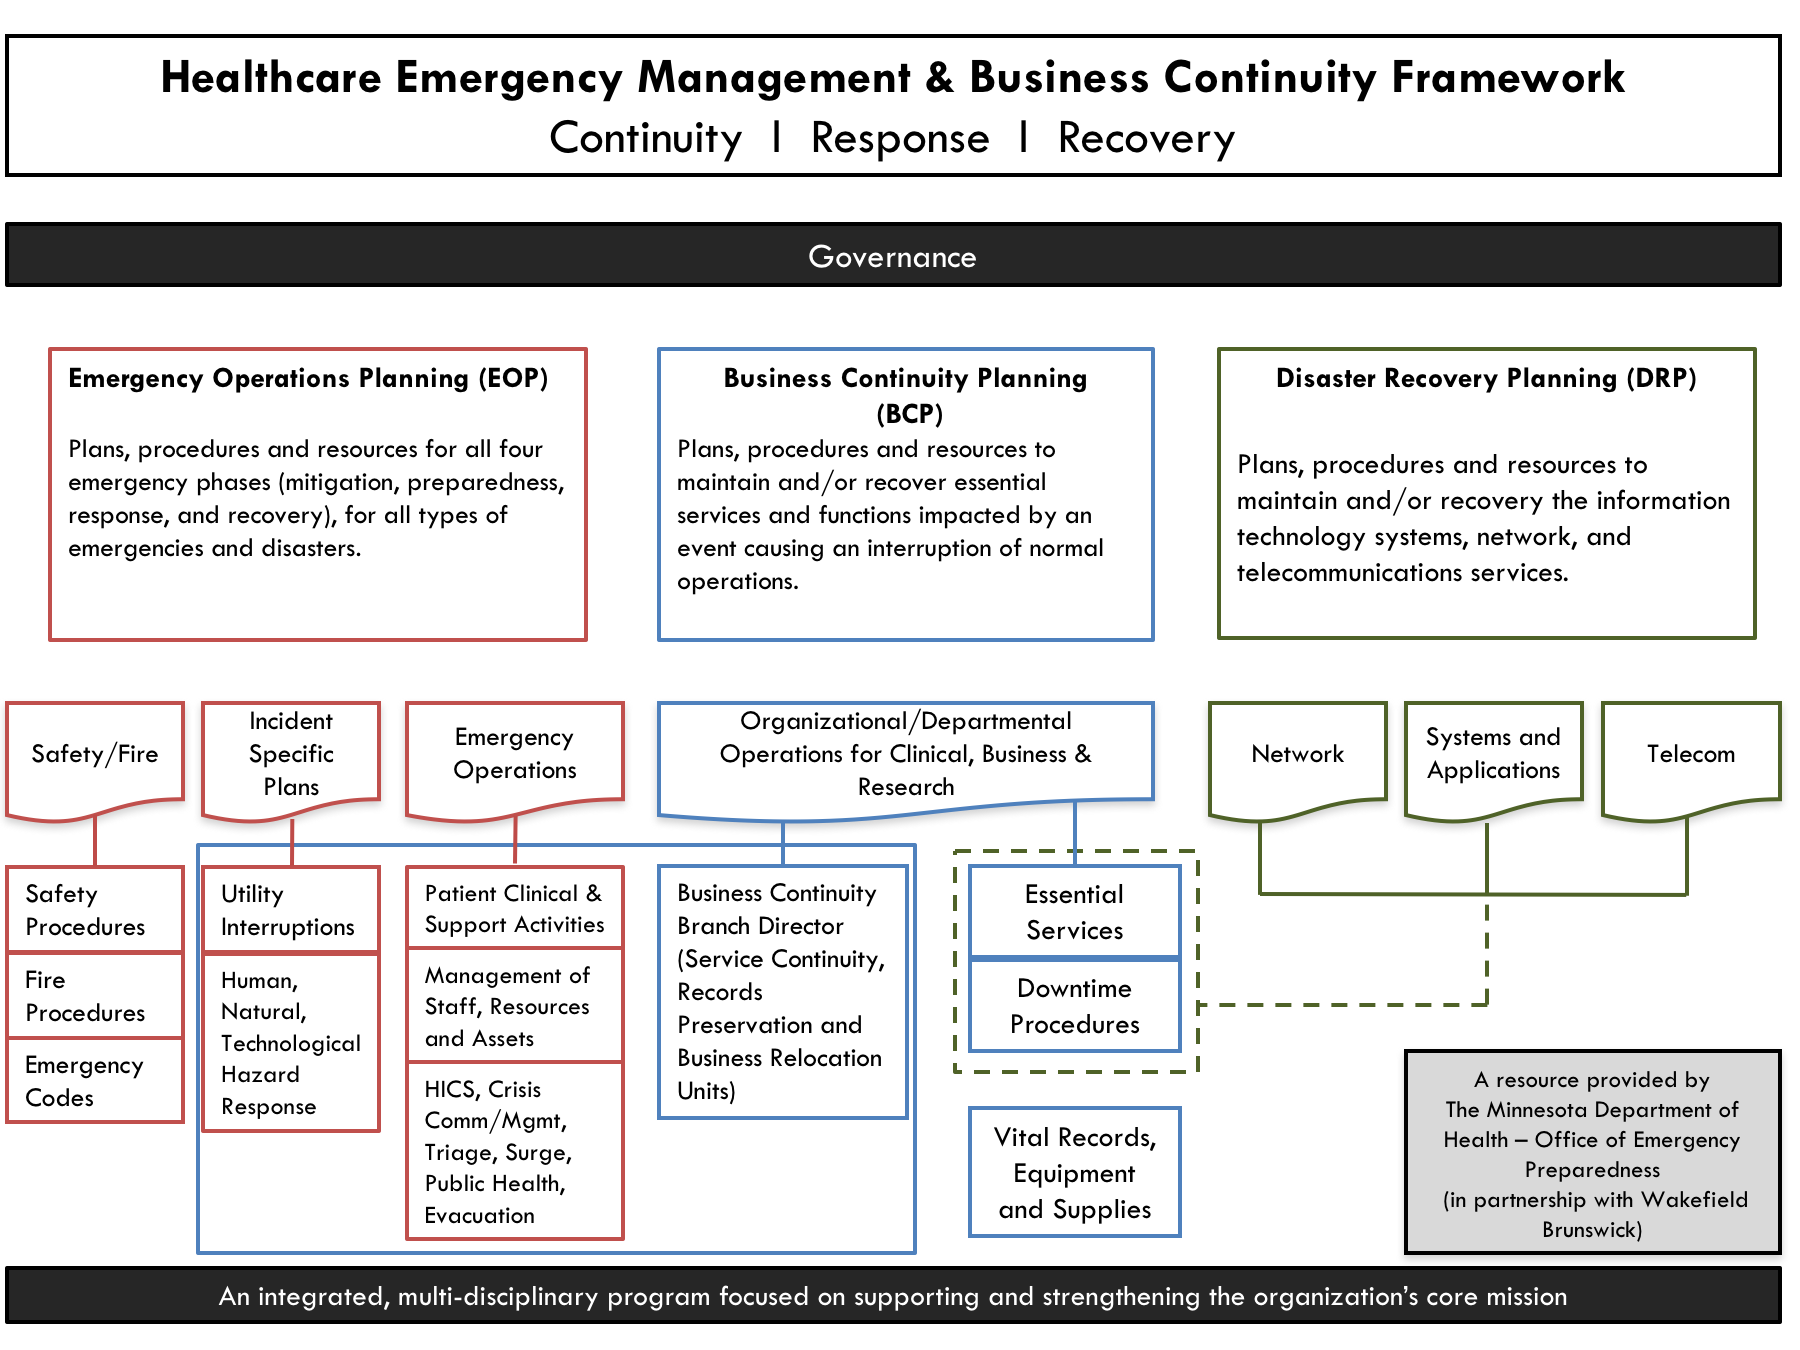 Healthcare Emergency Management & Business Continuity Framework